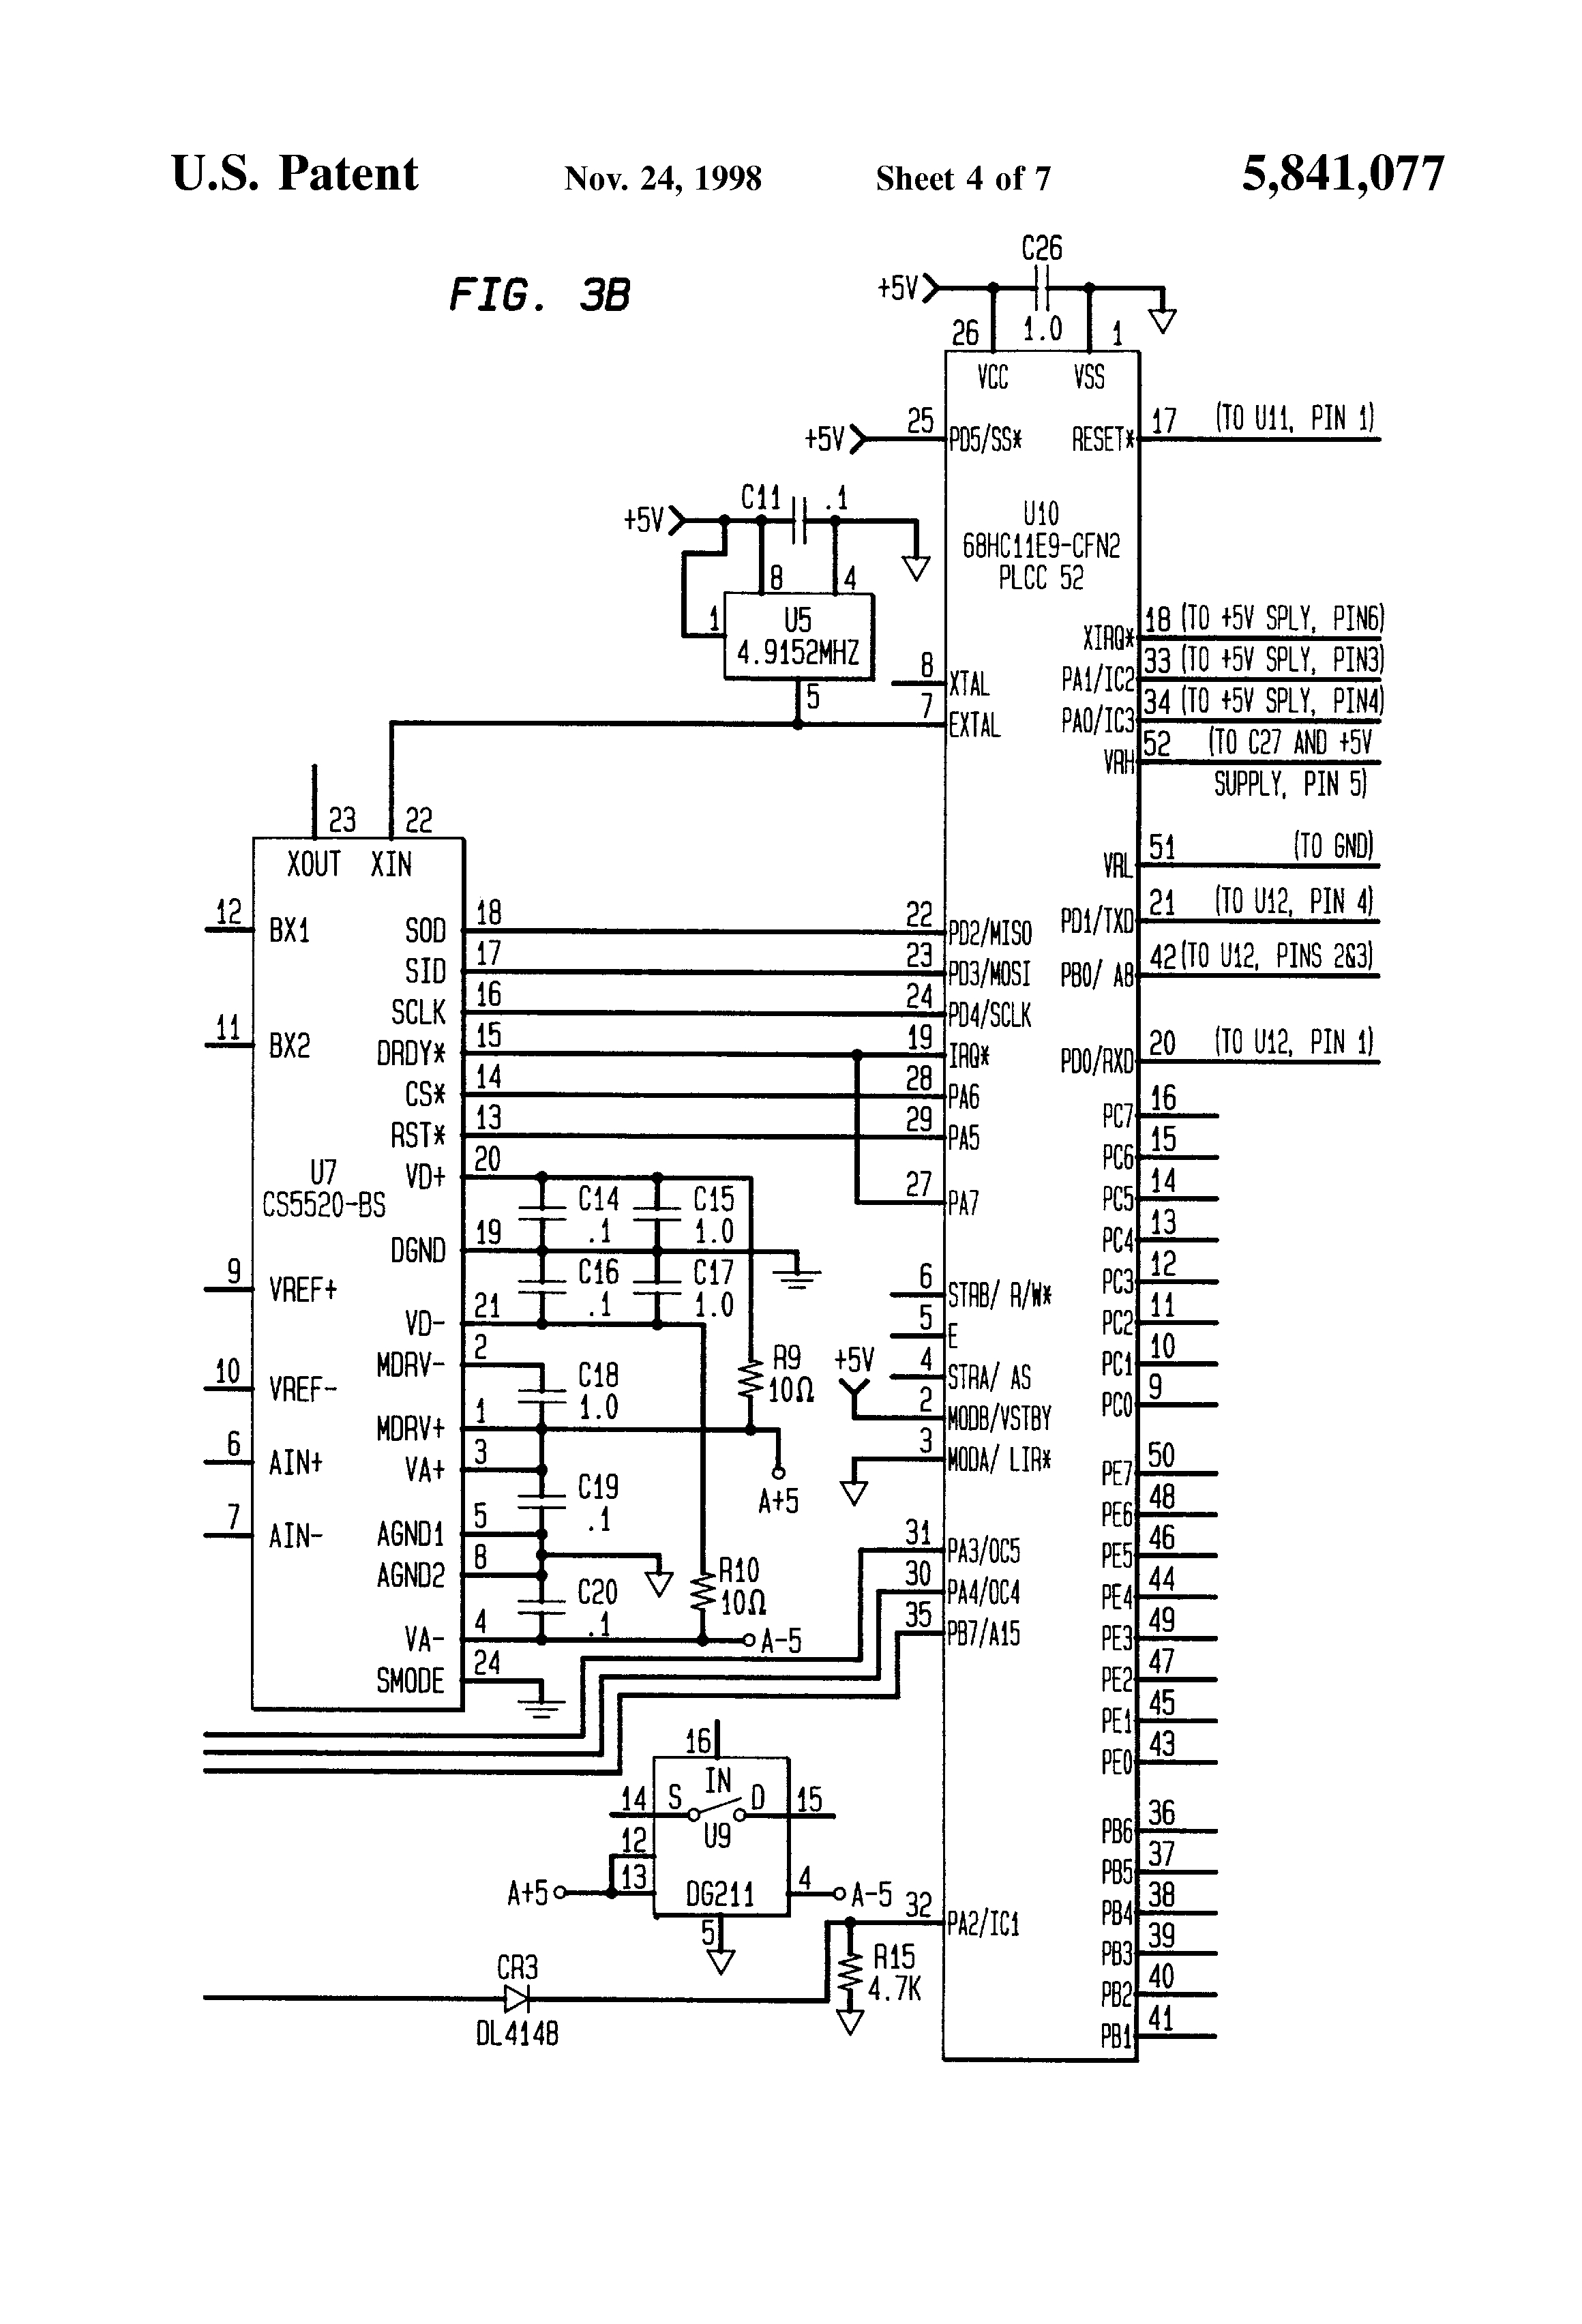 load cell wiring diagram Collection-load cell junction box wiring diagram Download Load Cell Wiring Diagram Luxury Amazing Load Cell 2-i